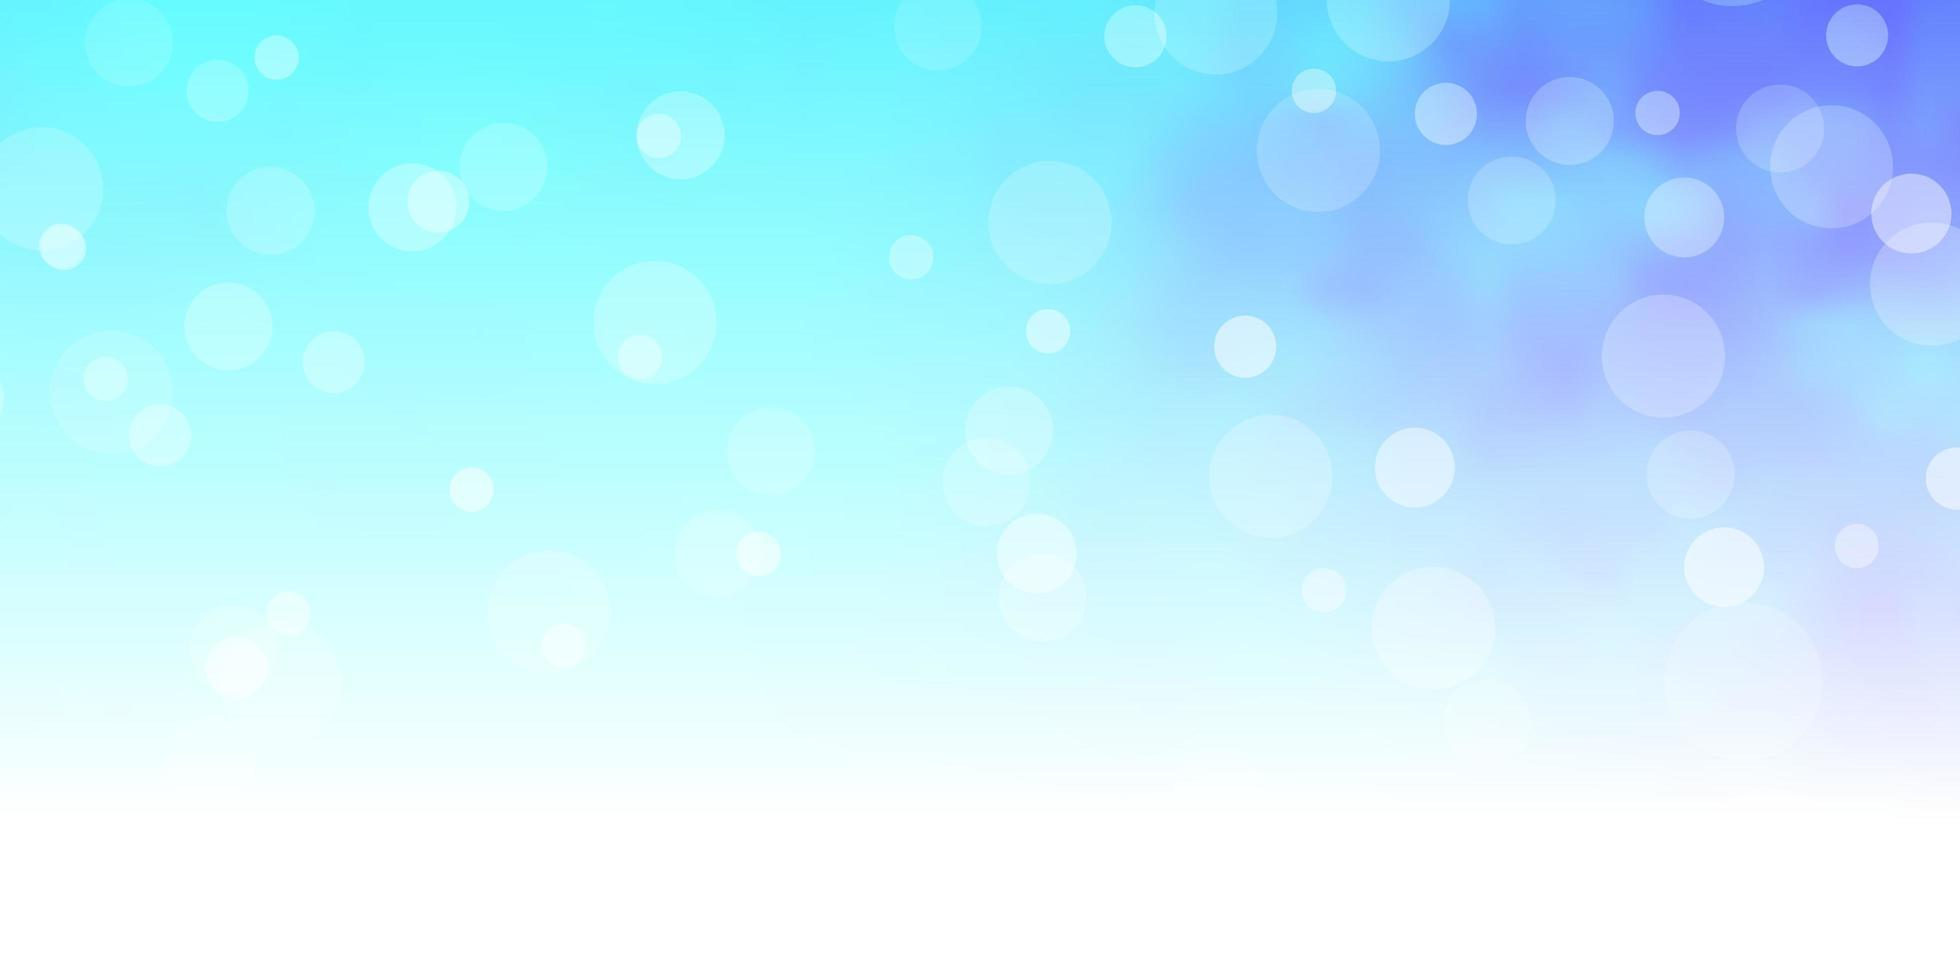 Light BLUE vector layout with circles